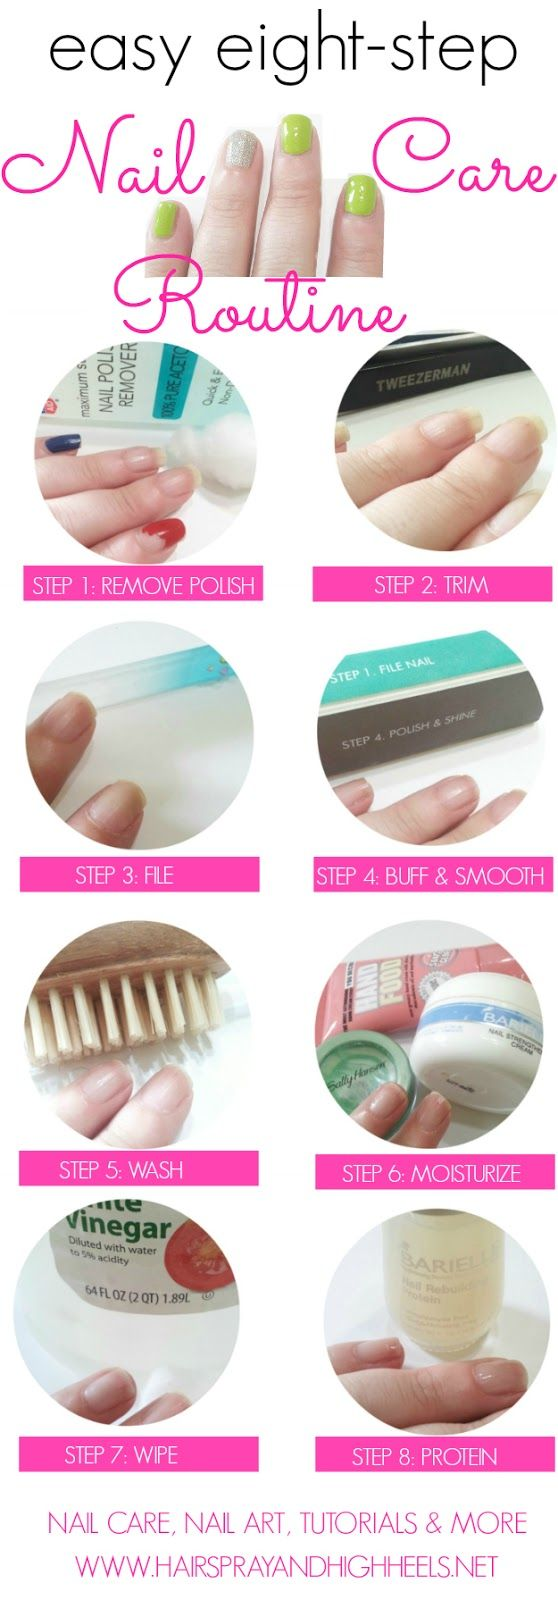 A quick and easy diy nail care routine that you can do at home without having to pay extra at a salon. This nail care routine is simple to accomplish.